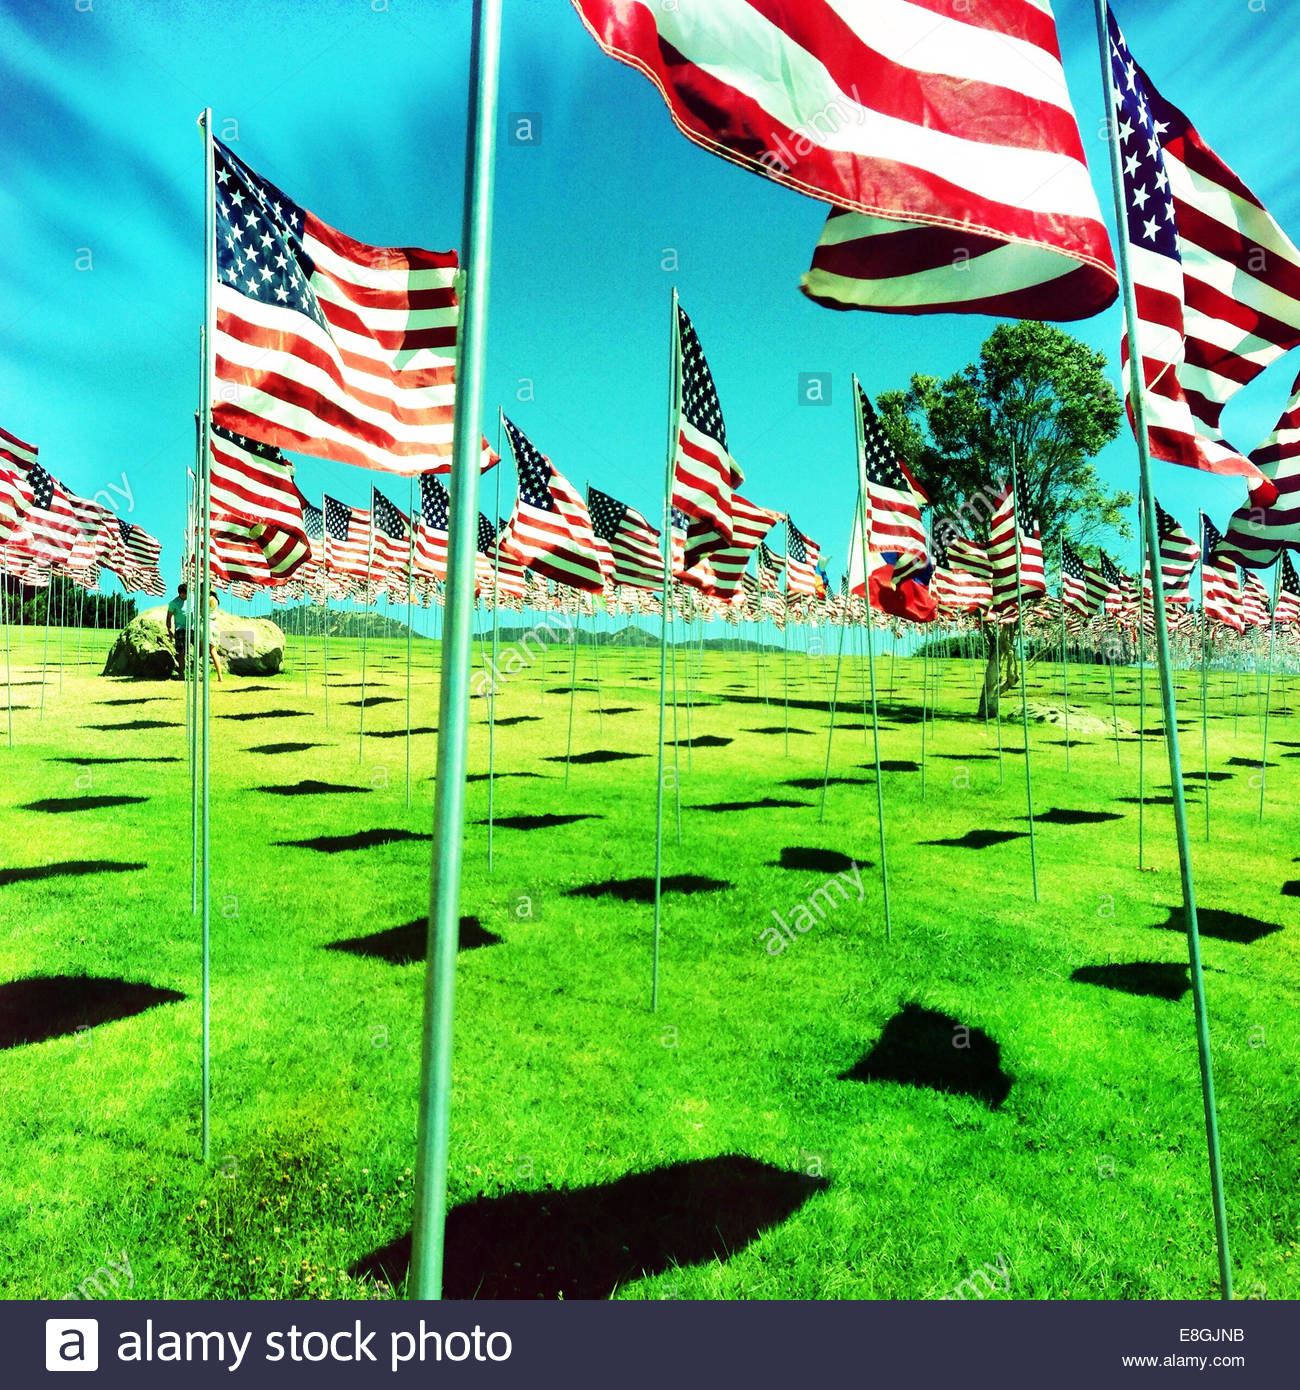 American flags on green meadow - Stock Image